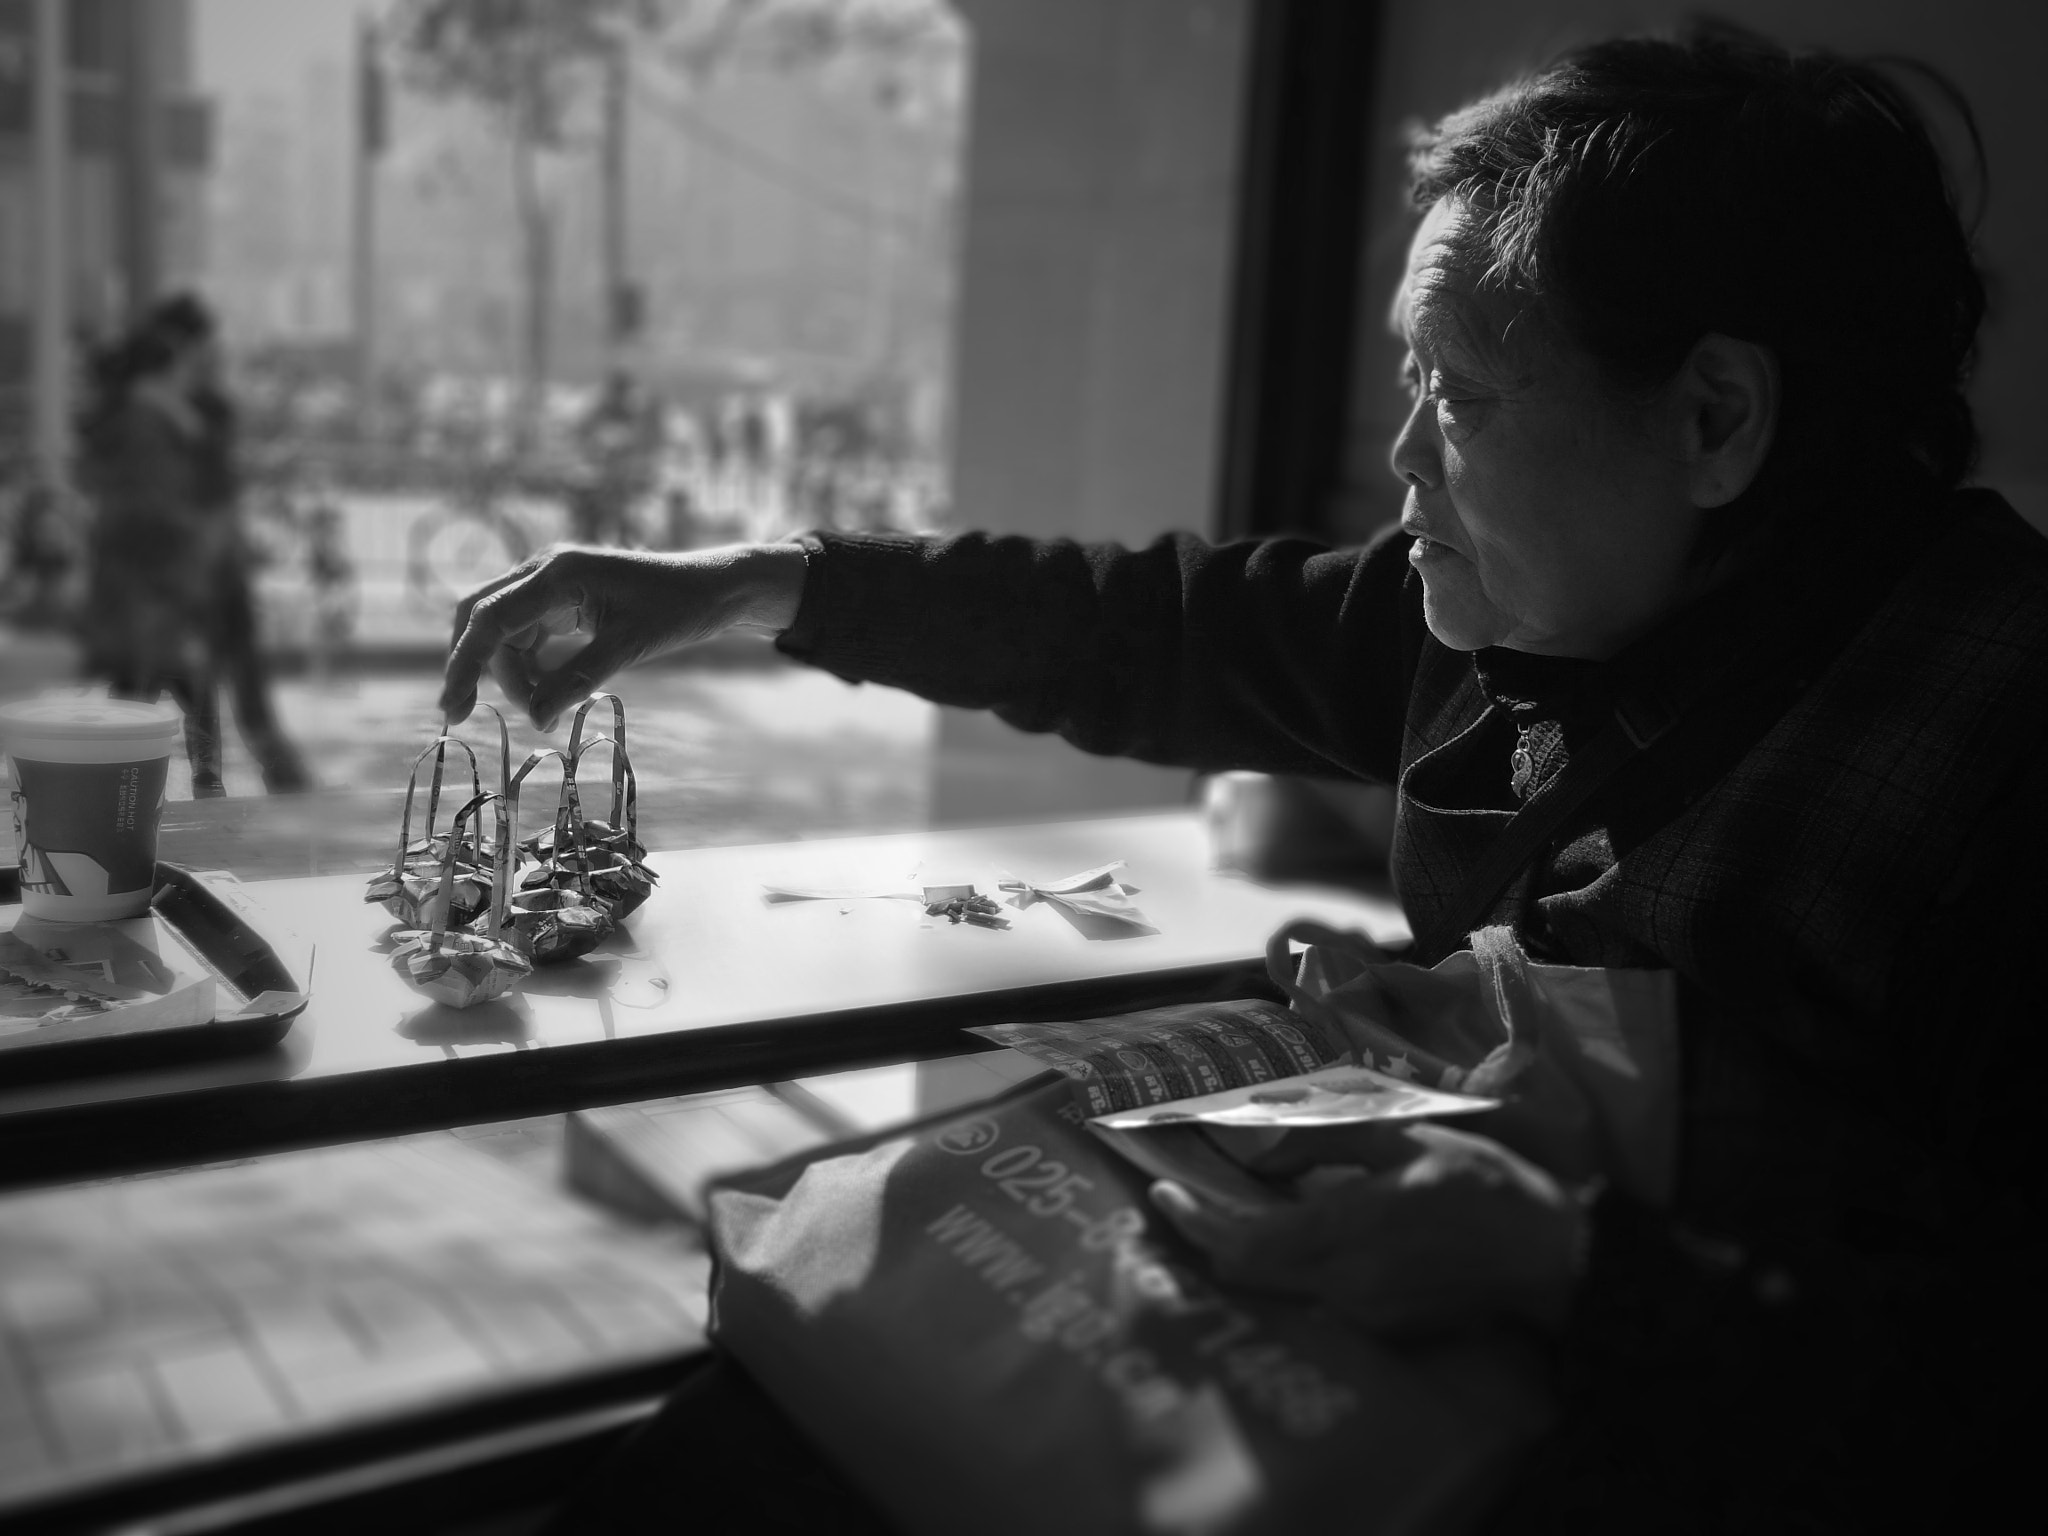 Photograph Old Woman Making Origami by Soleil Neon on 500px